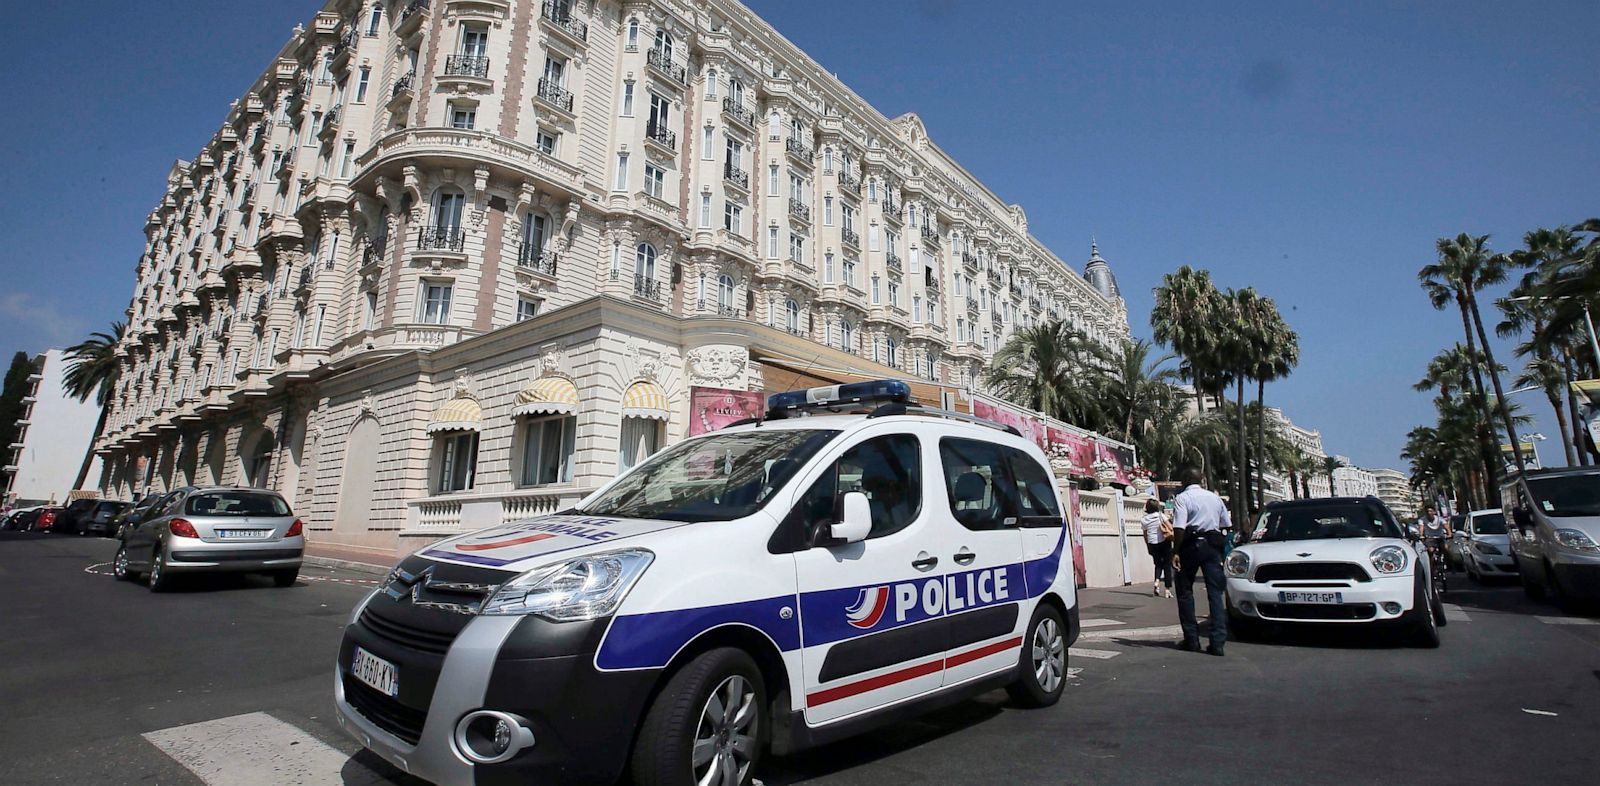 PHOTO: Carlton Intercontinental Hotel in Cannes